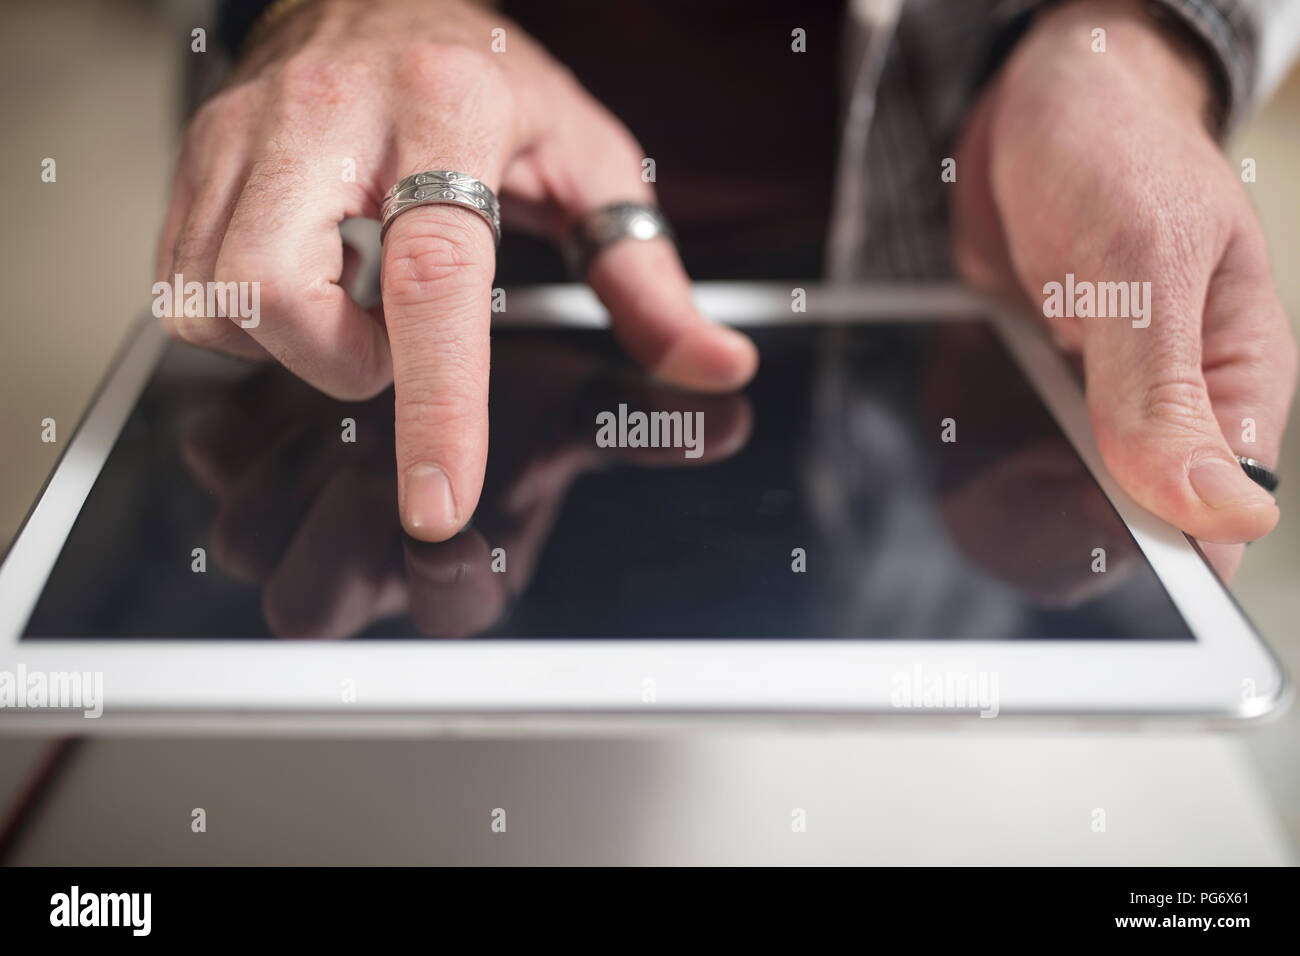 Close-up of man using tablet - Stock Image